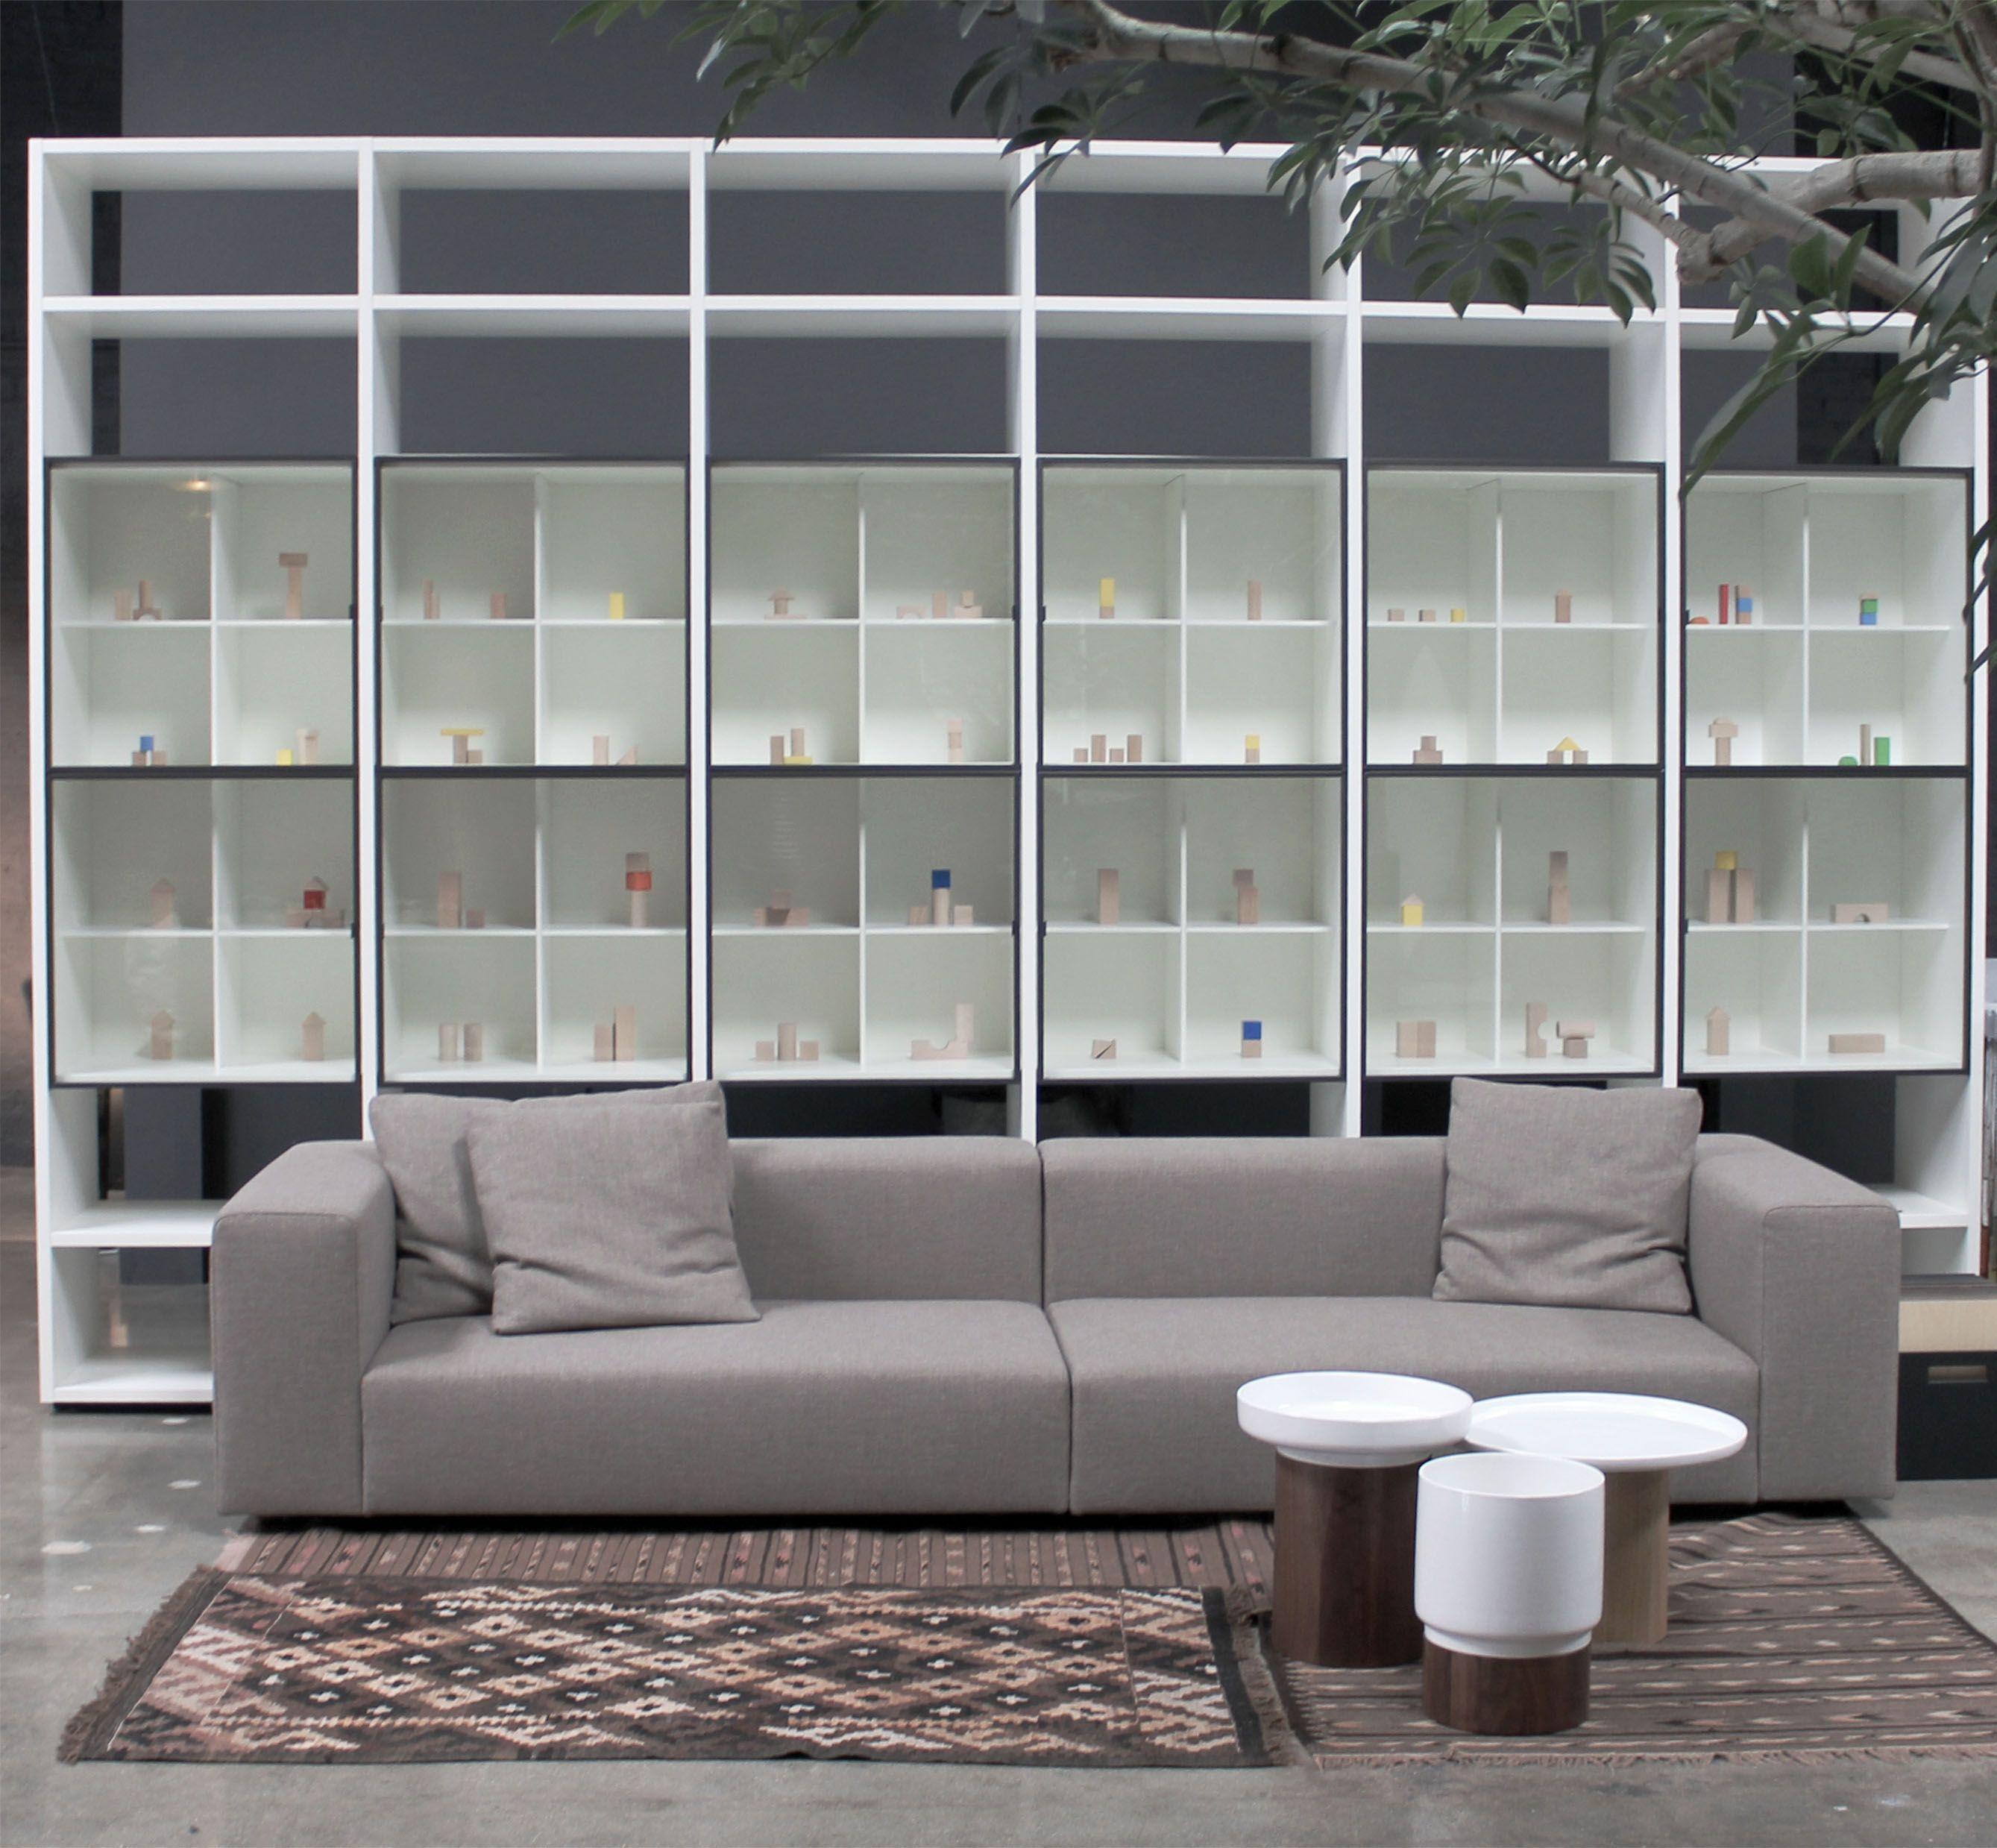 Living Divani The Wall Sofa Wall Sofa By Living Divani System By Porro Apu Tables By Zeitraum